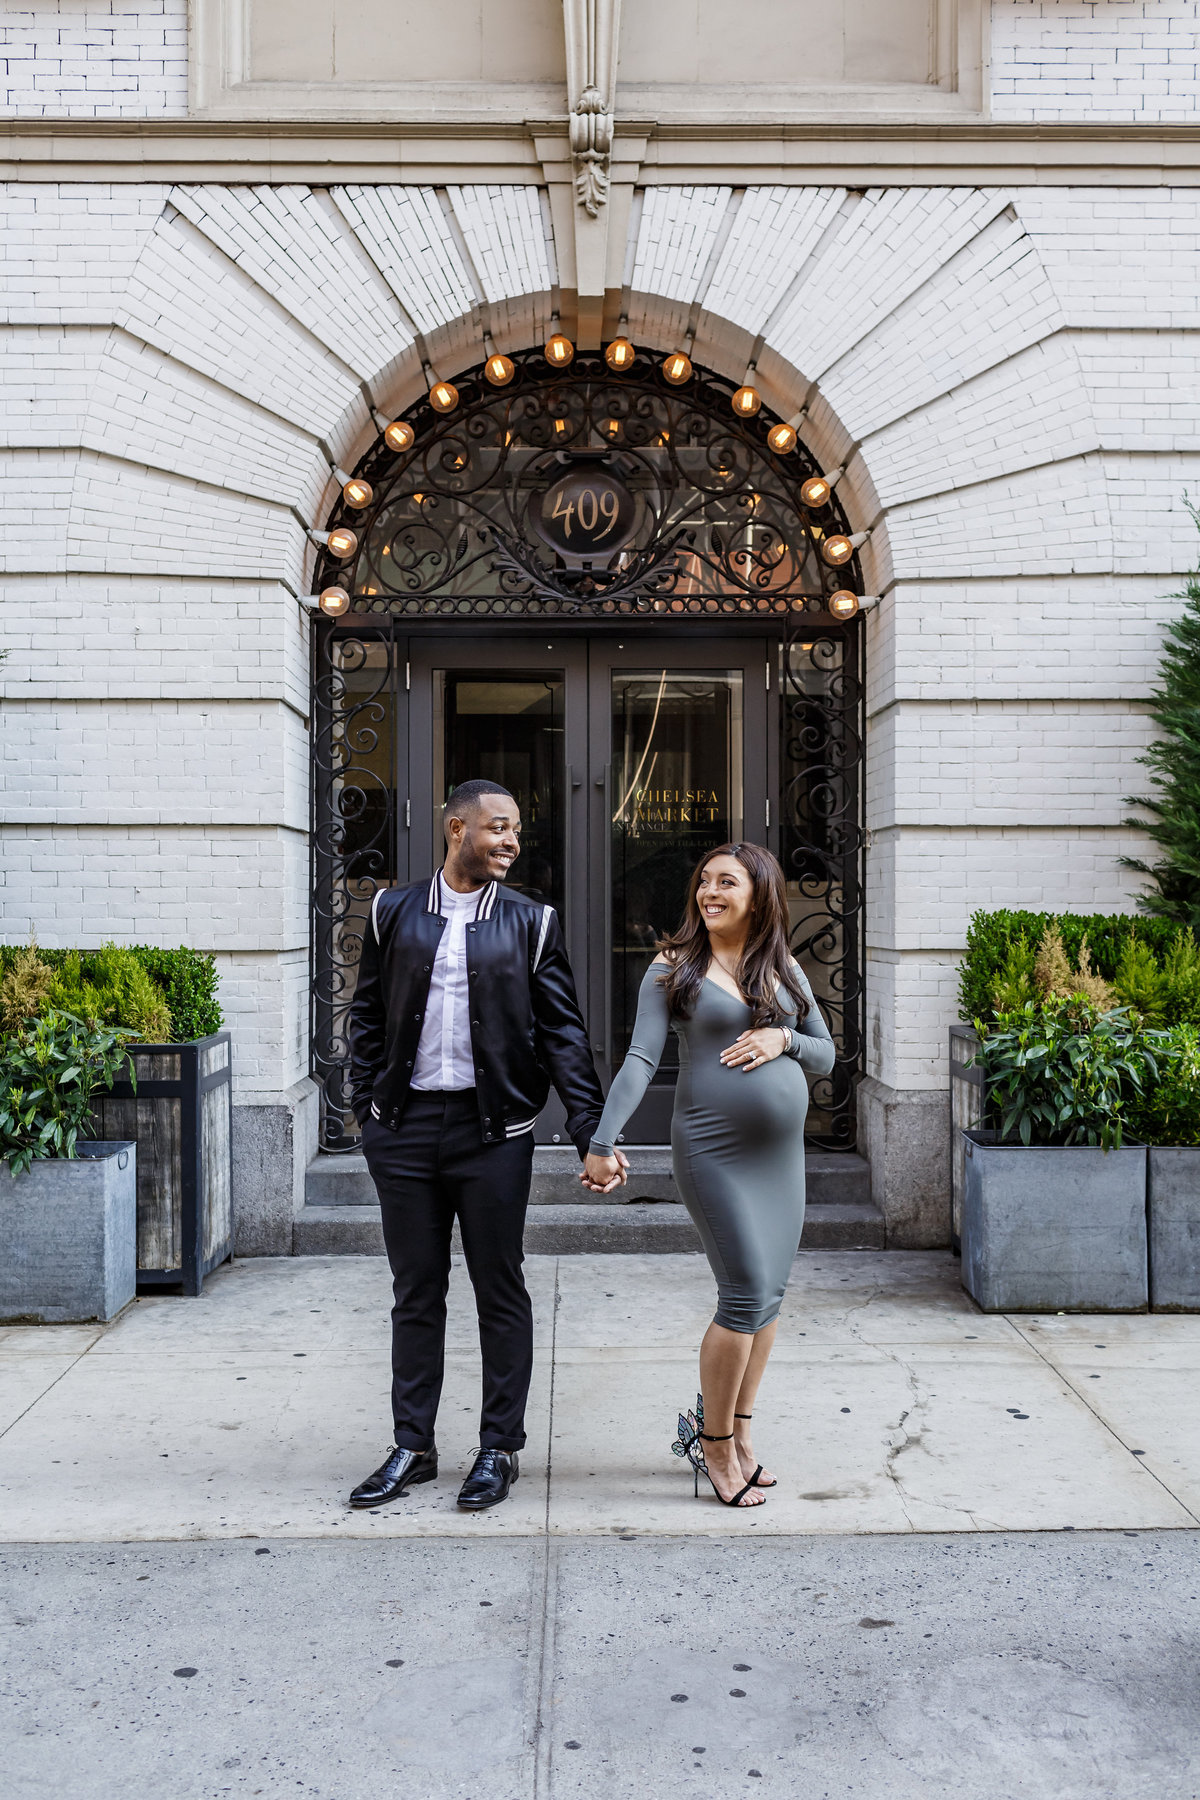 City_Maternity_Session_Inspiration_New_York_Amy_Anaiz010